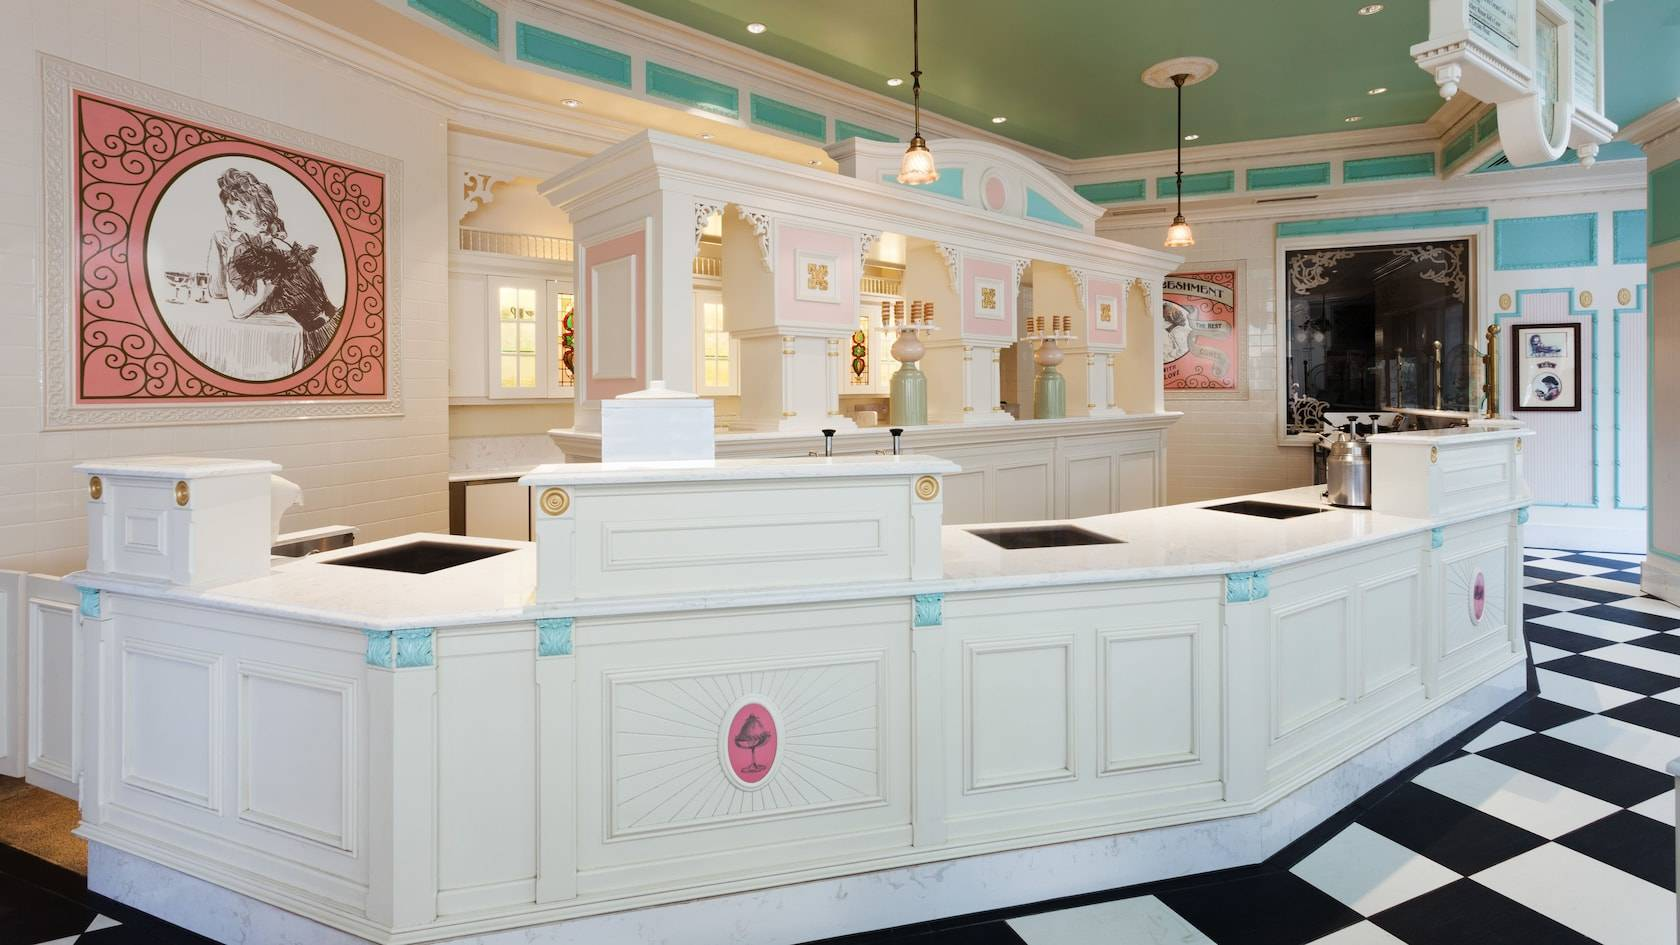 Plaza Ice Cream Parlor overview